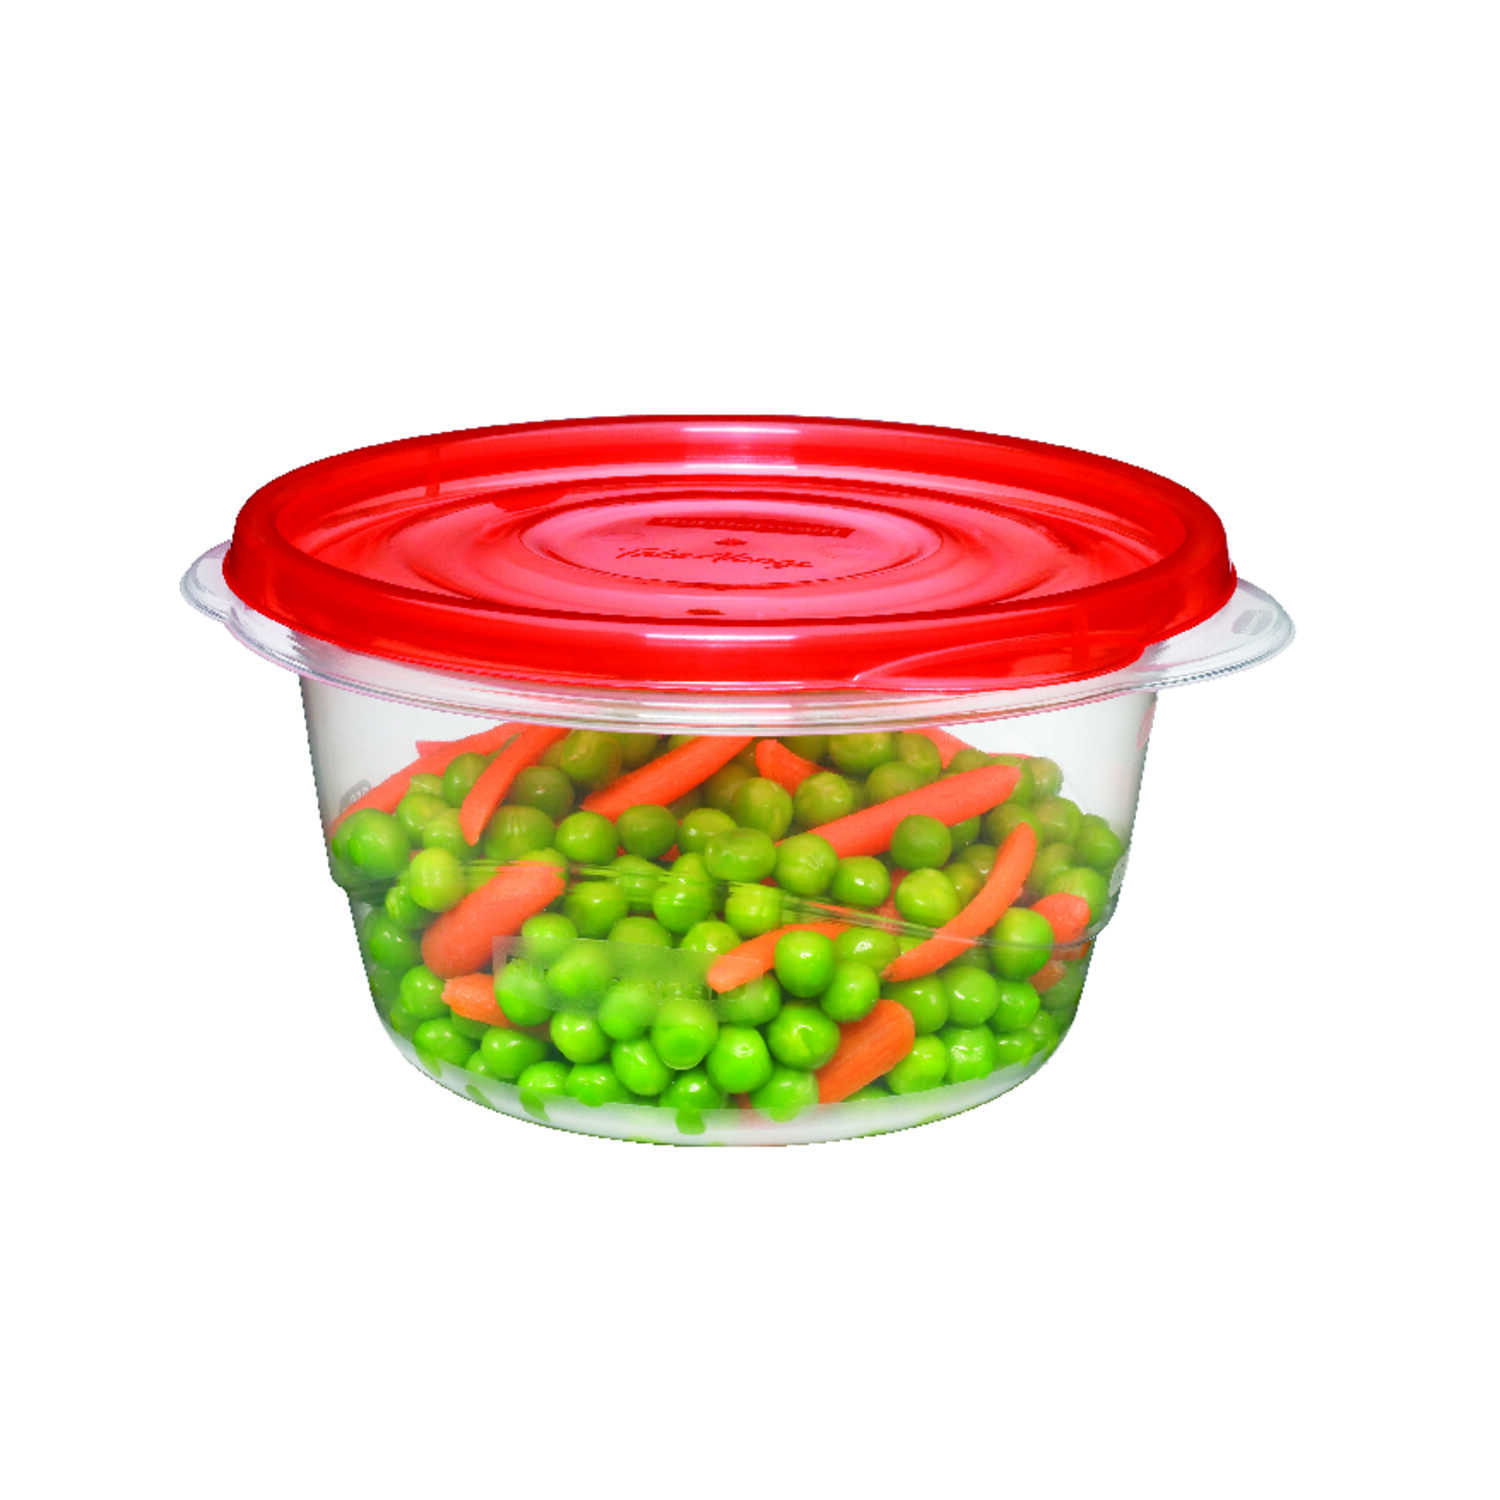 Rubbermaid  Food Storage Container  3.2 cups